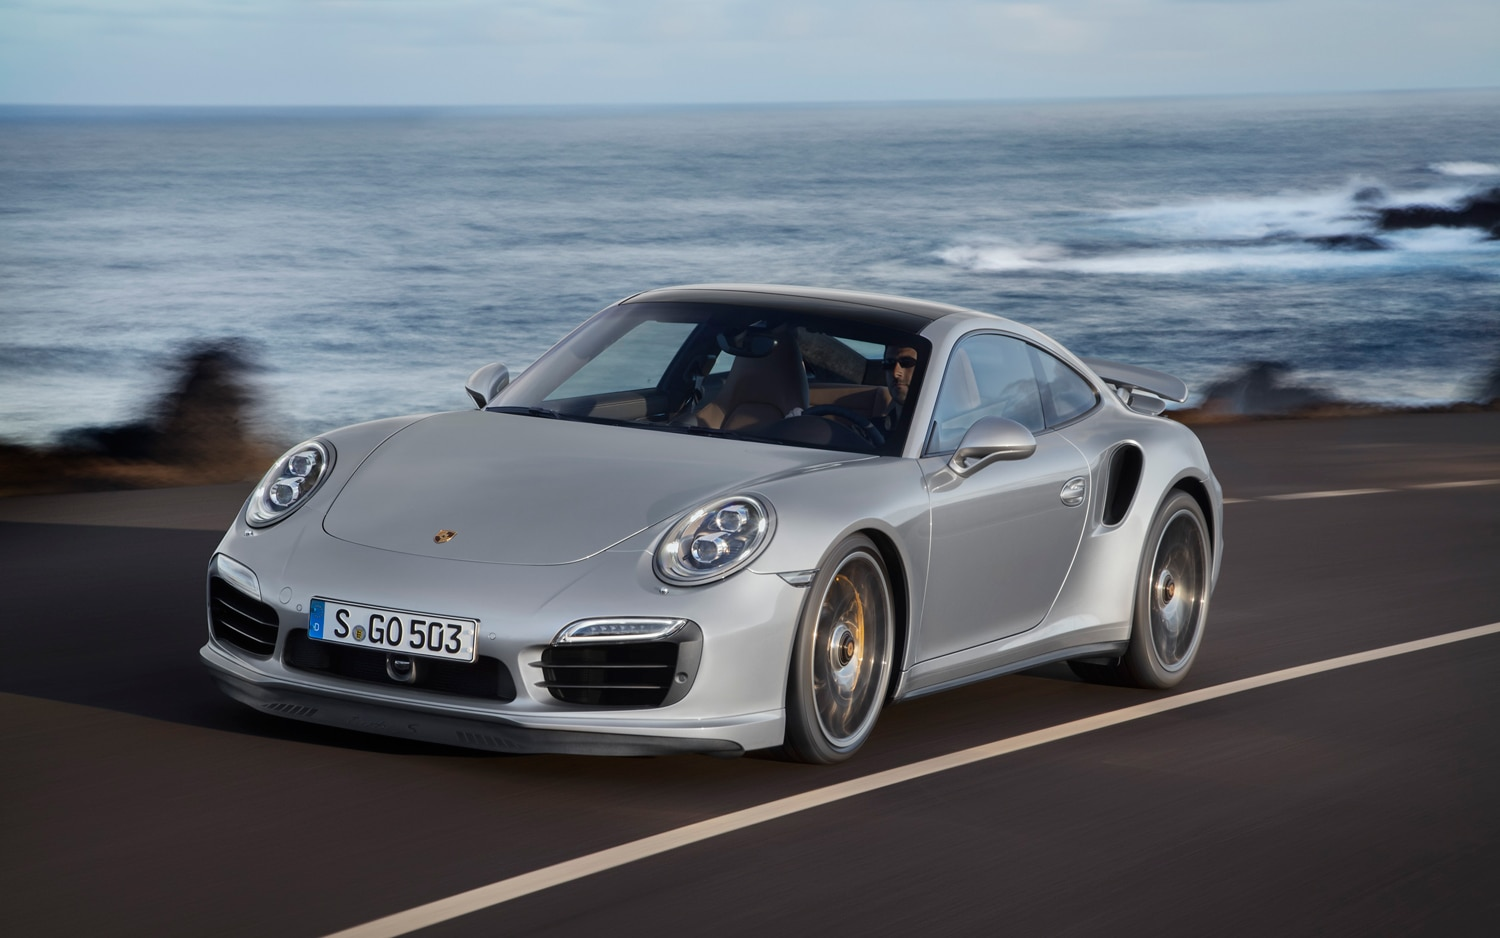 2014 Porsche 911 Turbo S Front Three Quarters In Motion 21